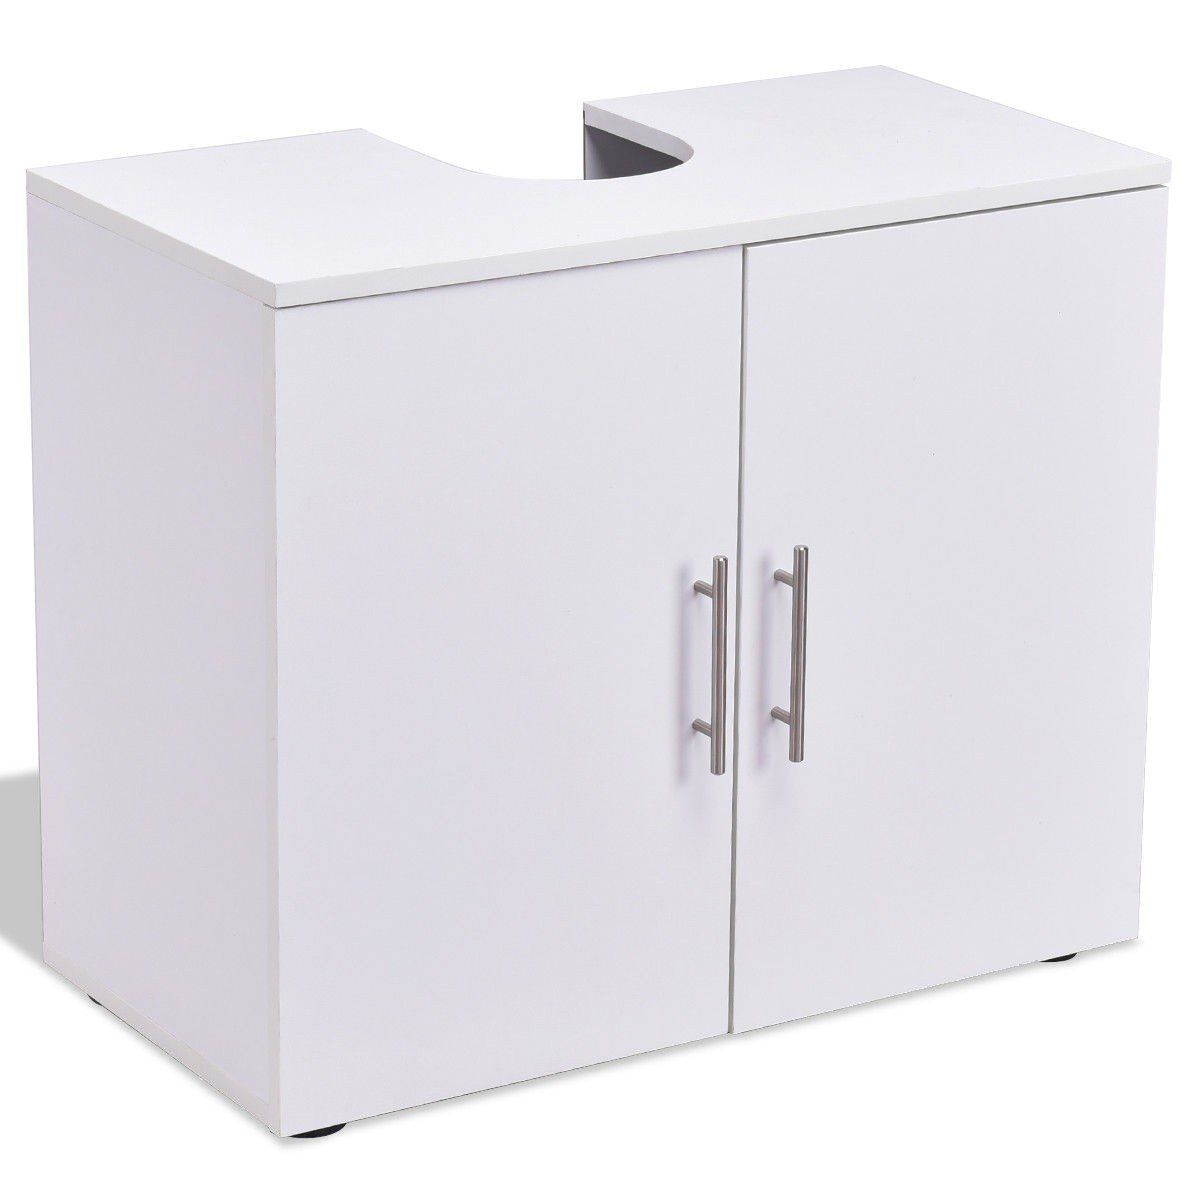 Storage Vanity Cabinet Bathroom Non Pedestal Under Sink Wall Mounted White Wood Furniture MD Group by MD Group (Image #1)